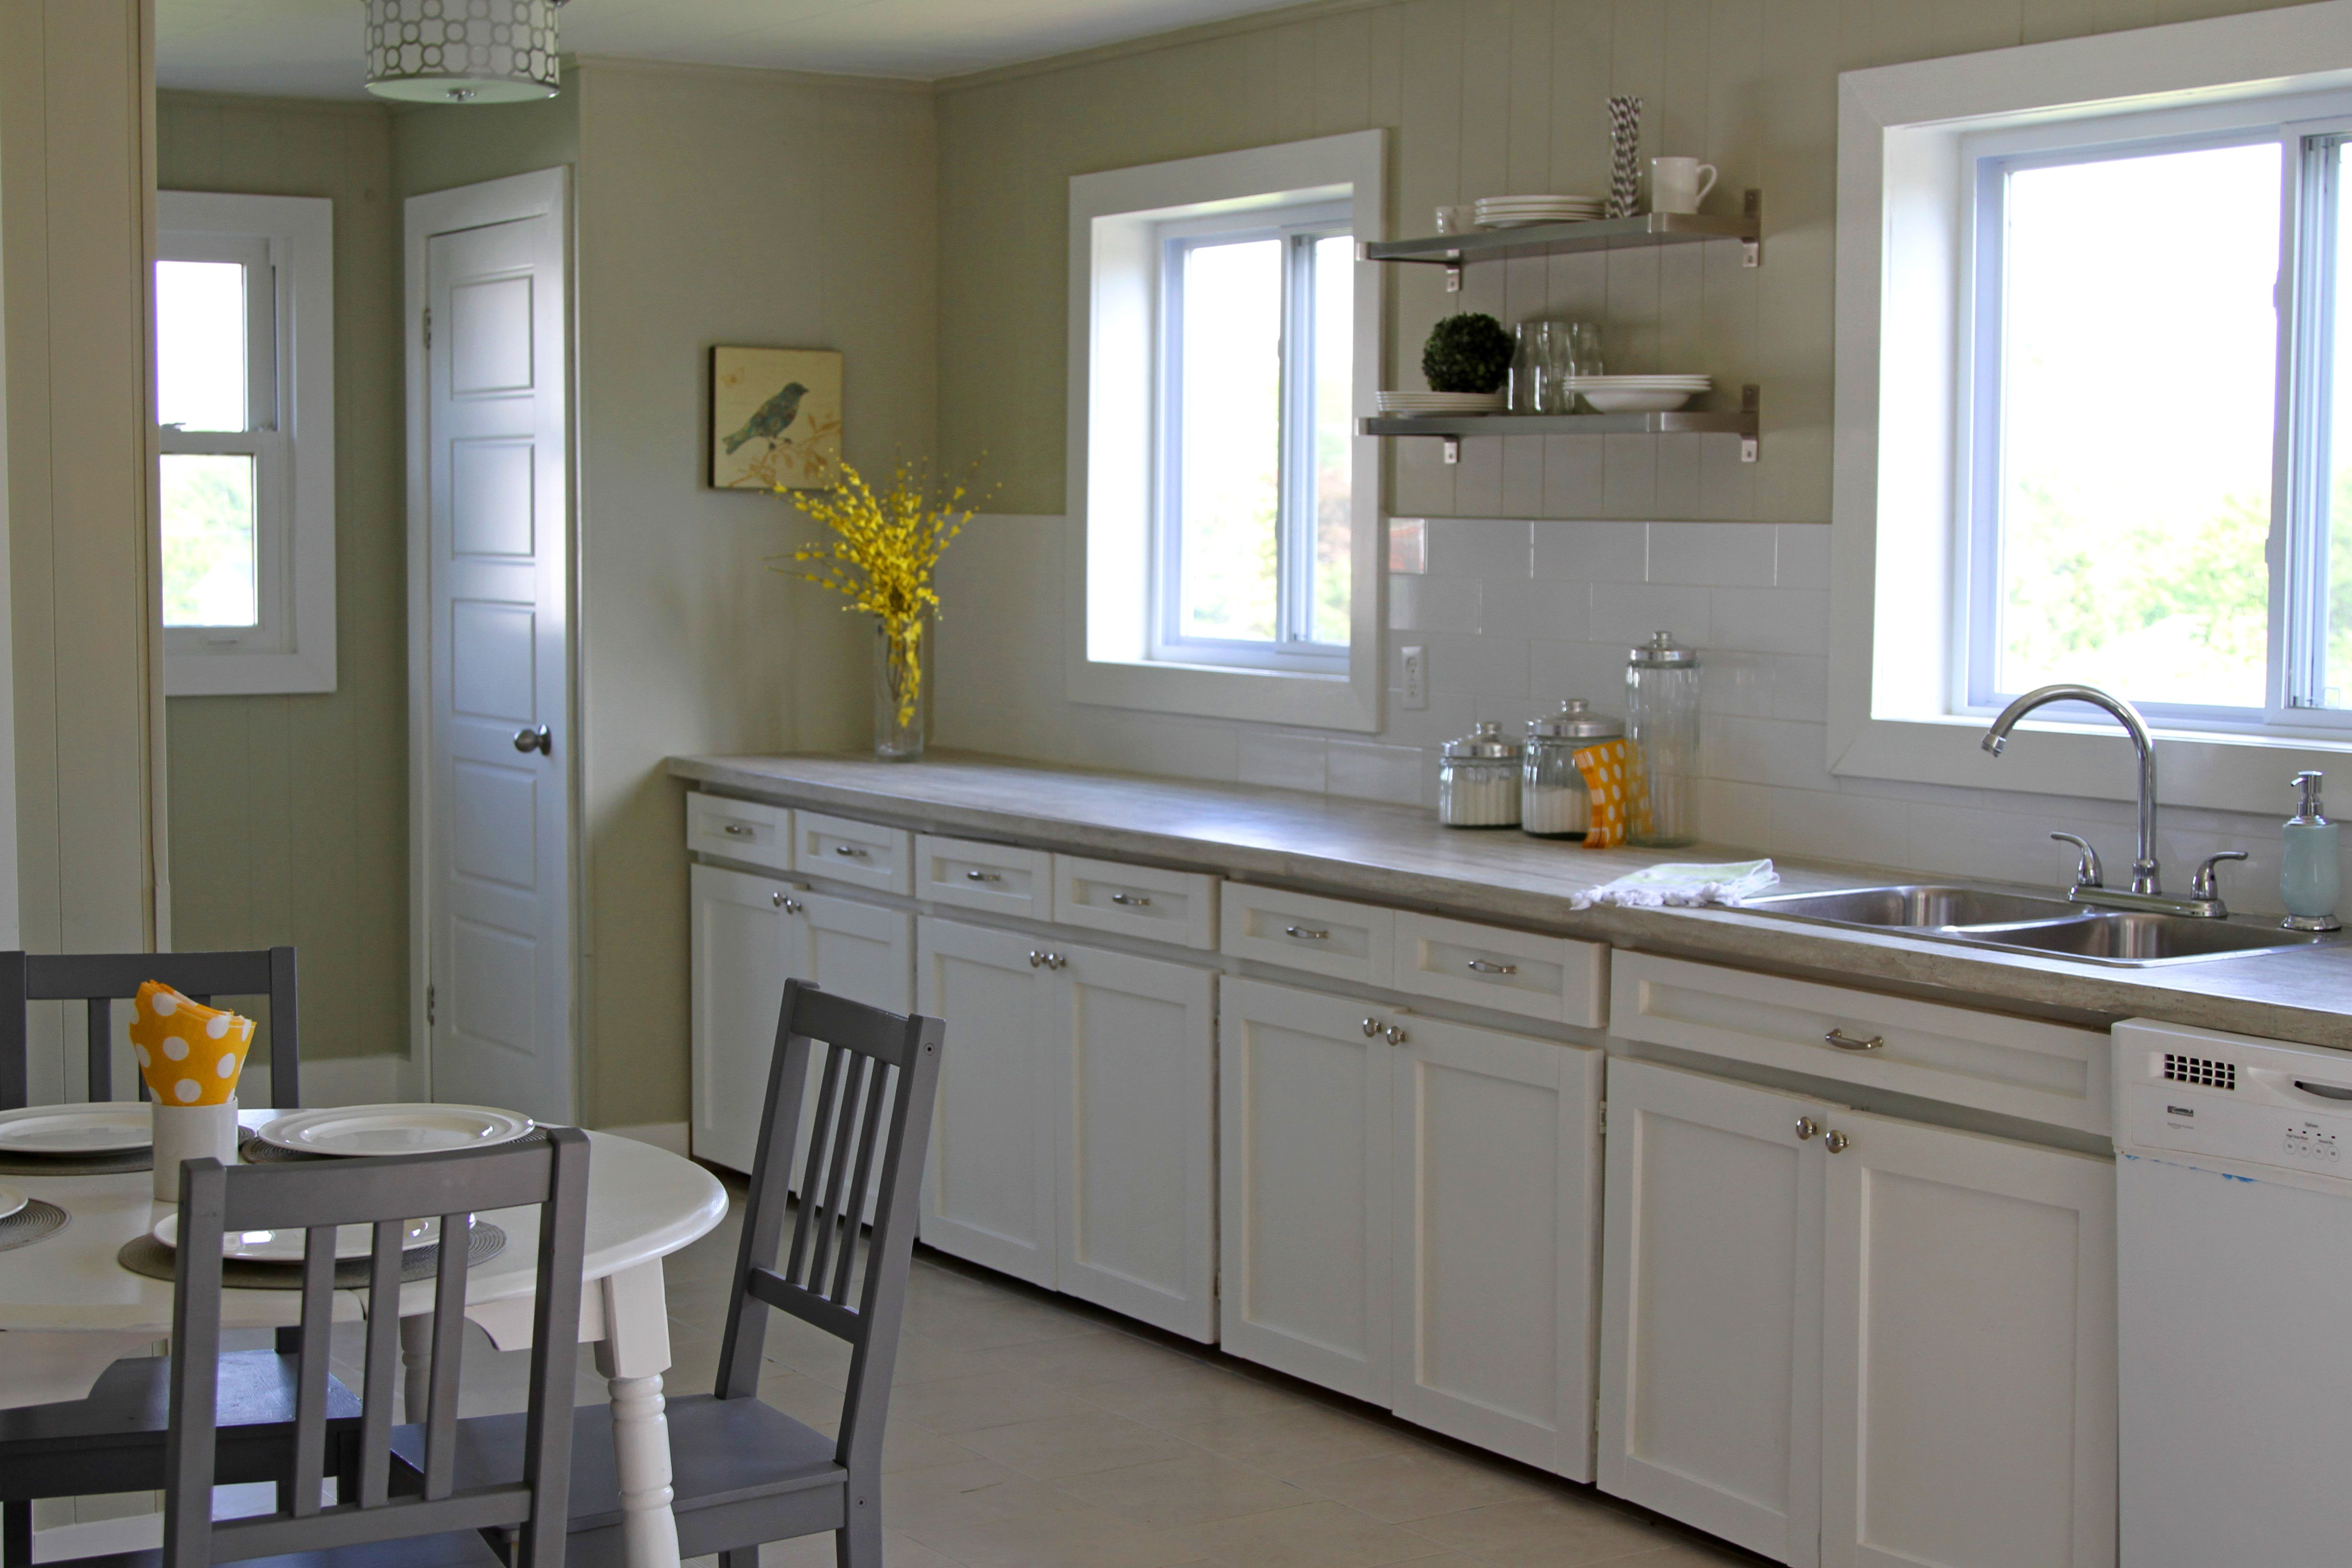 Simple Modern Renovated Kitchen Remove Top Cabinets Glue The Outside Of Bottom Cabinets With Slats Caulk Paint W Home Kitchens Kitchen Remodel Ikea Shelves